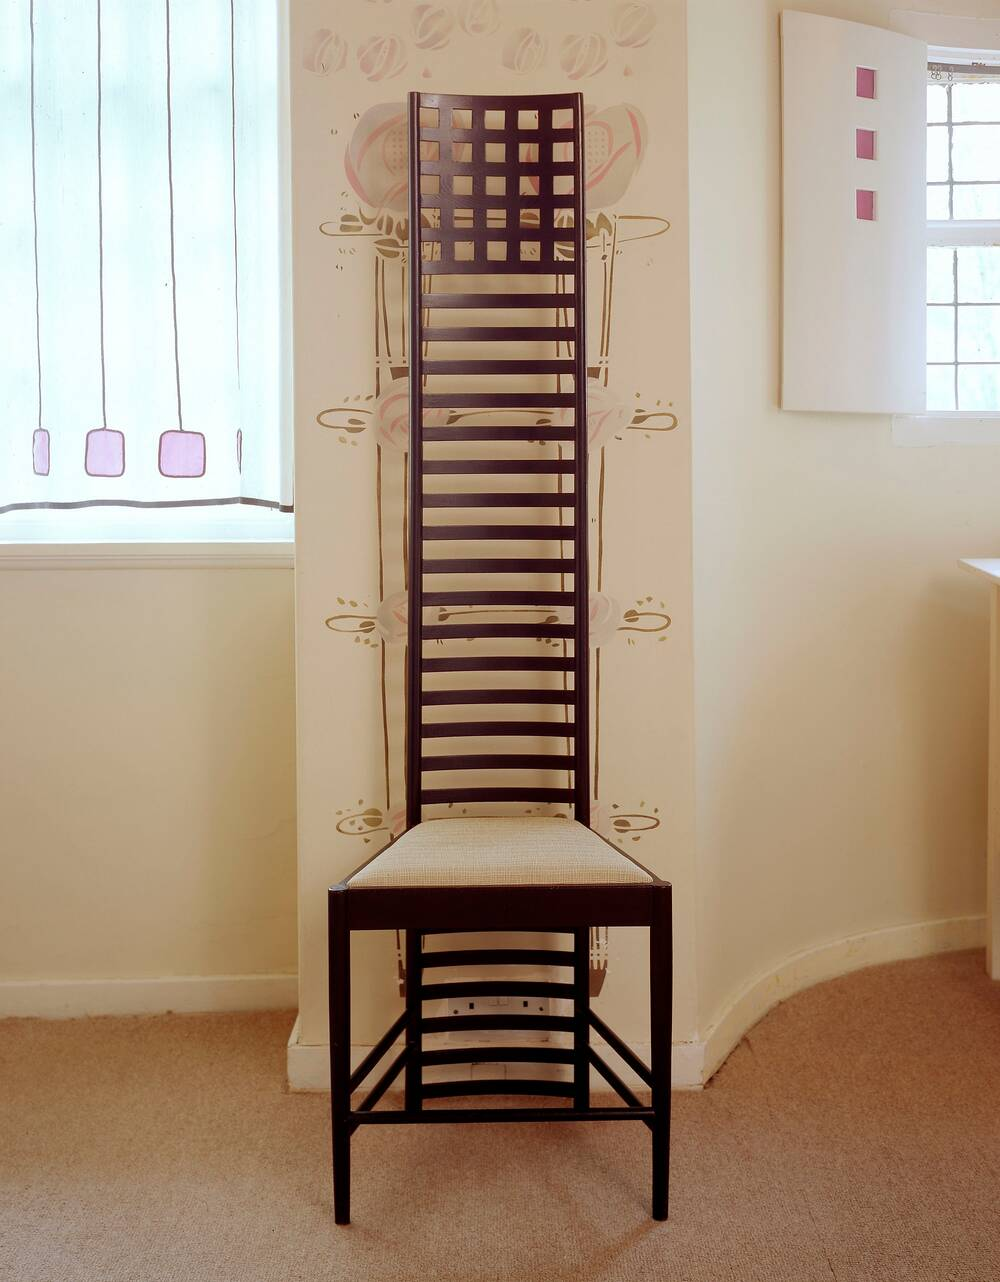 A very tall-backed  wooden chair stands against a wall that has pretty rose stencils on it, beside a window. The back of the chair resembles a ladder with many horizontal rungs. The seat is cushioned in a light fabric.